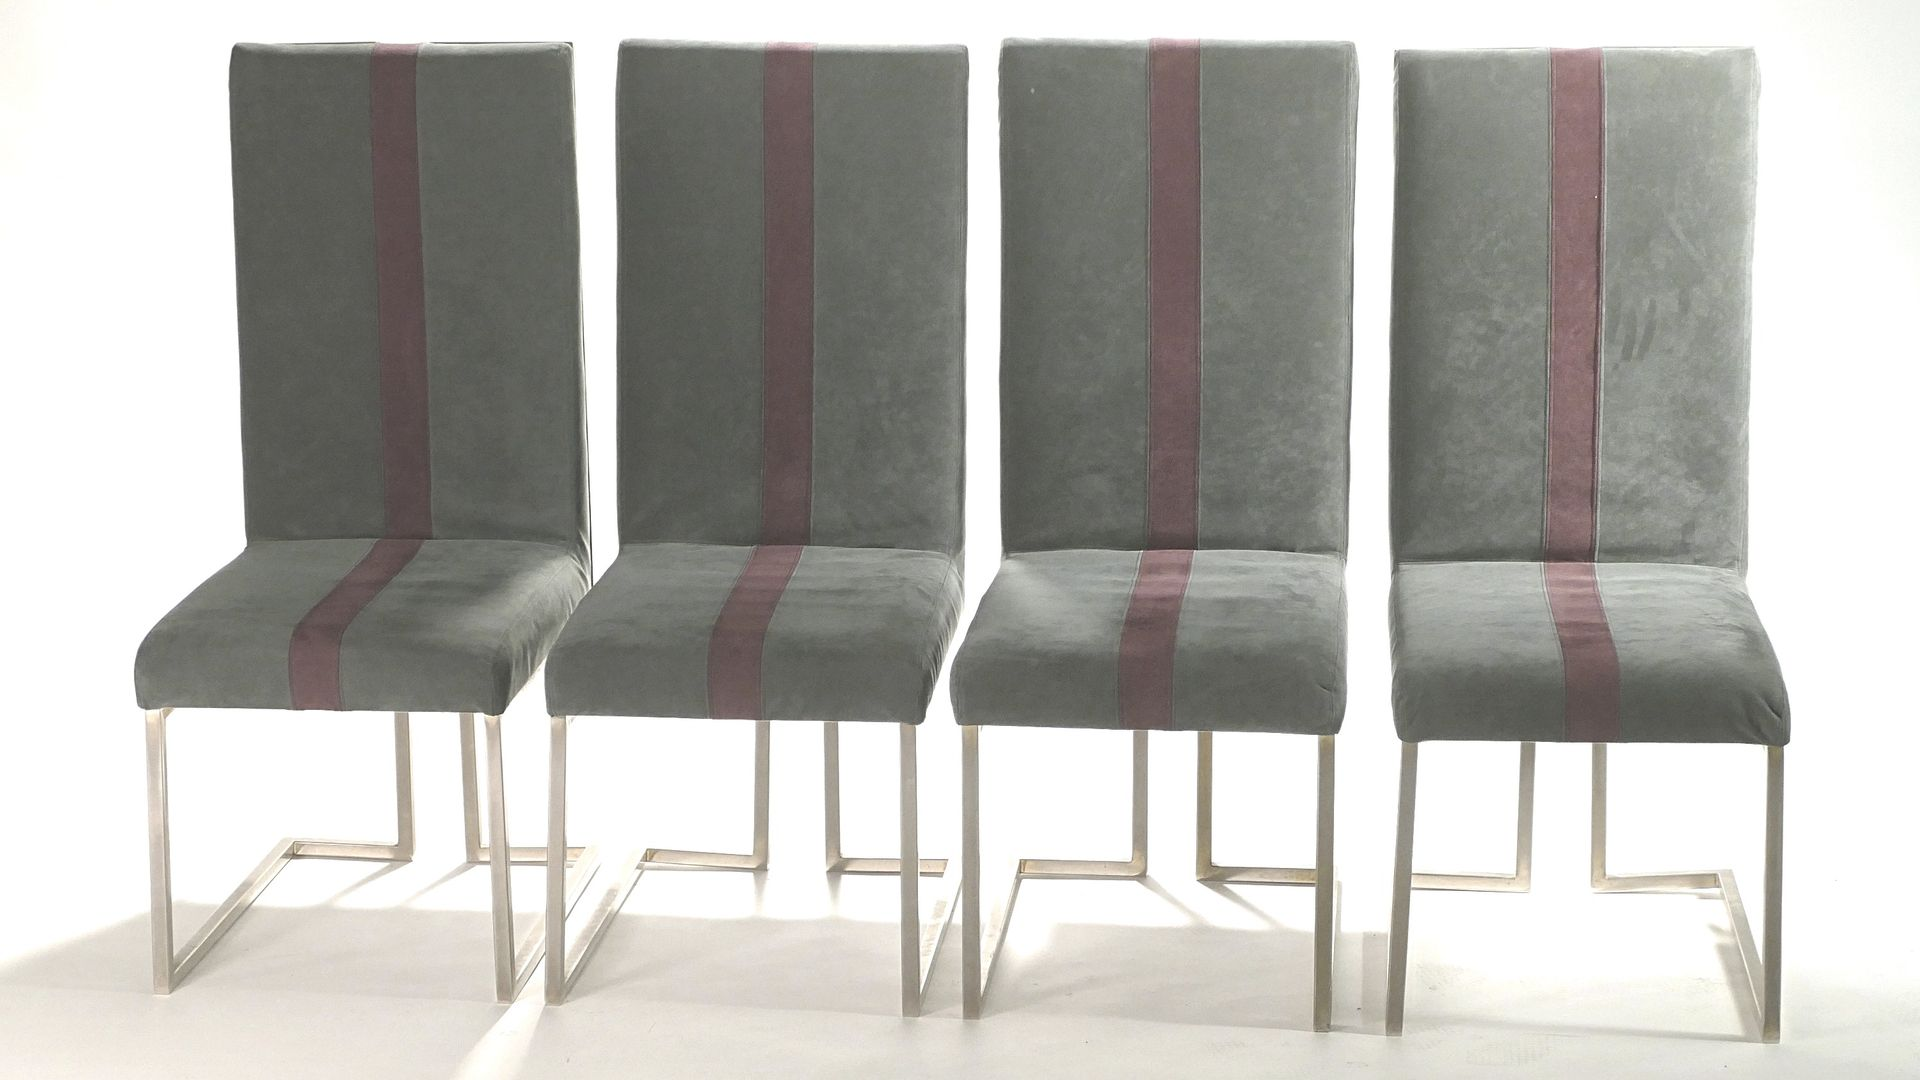 Brushed Metal Chairs By Guy Lefevre For Maison Jansen 1970s, Set Of 4